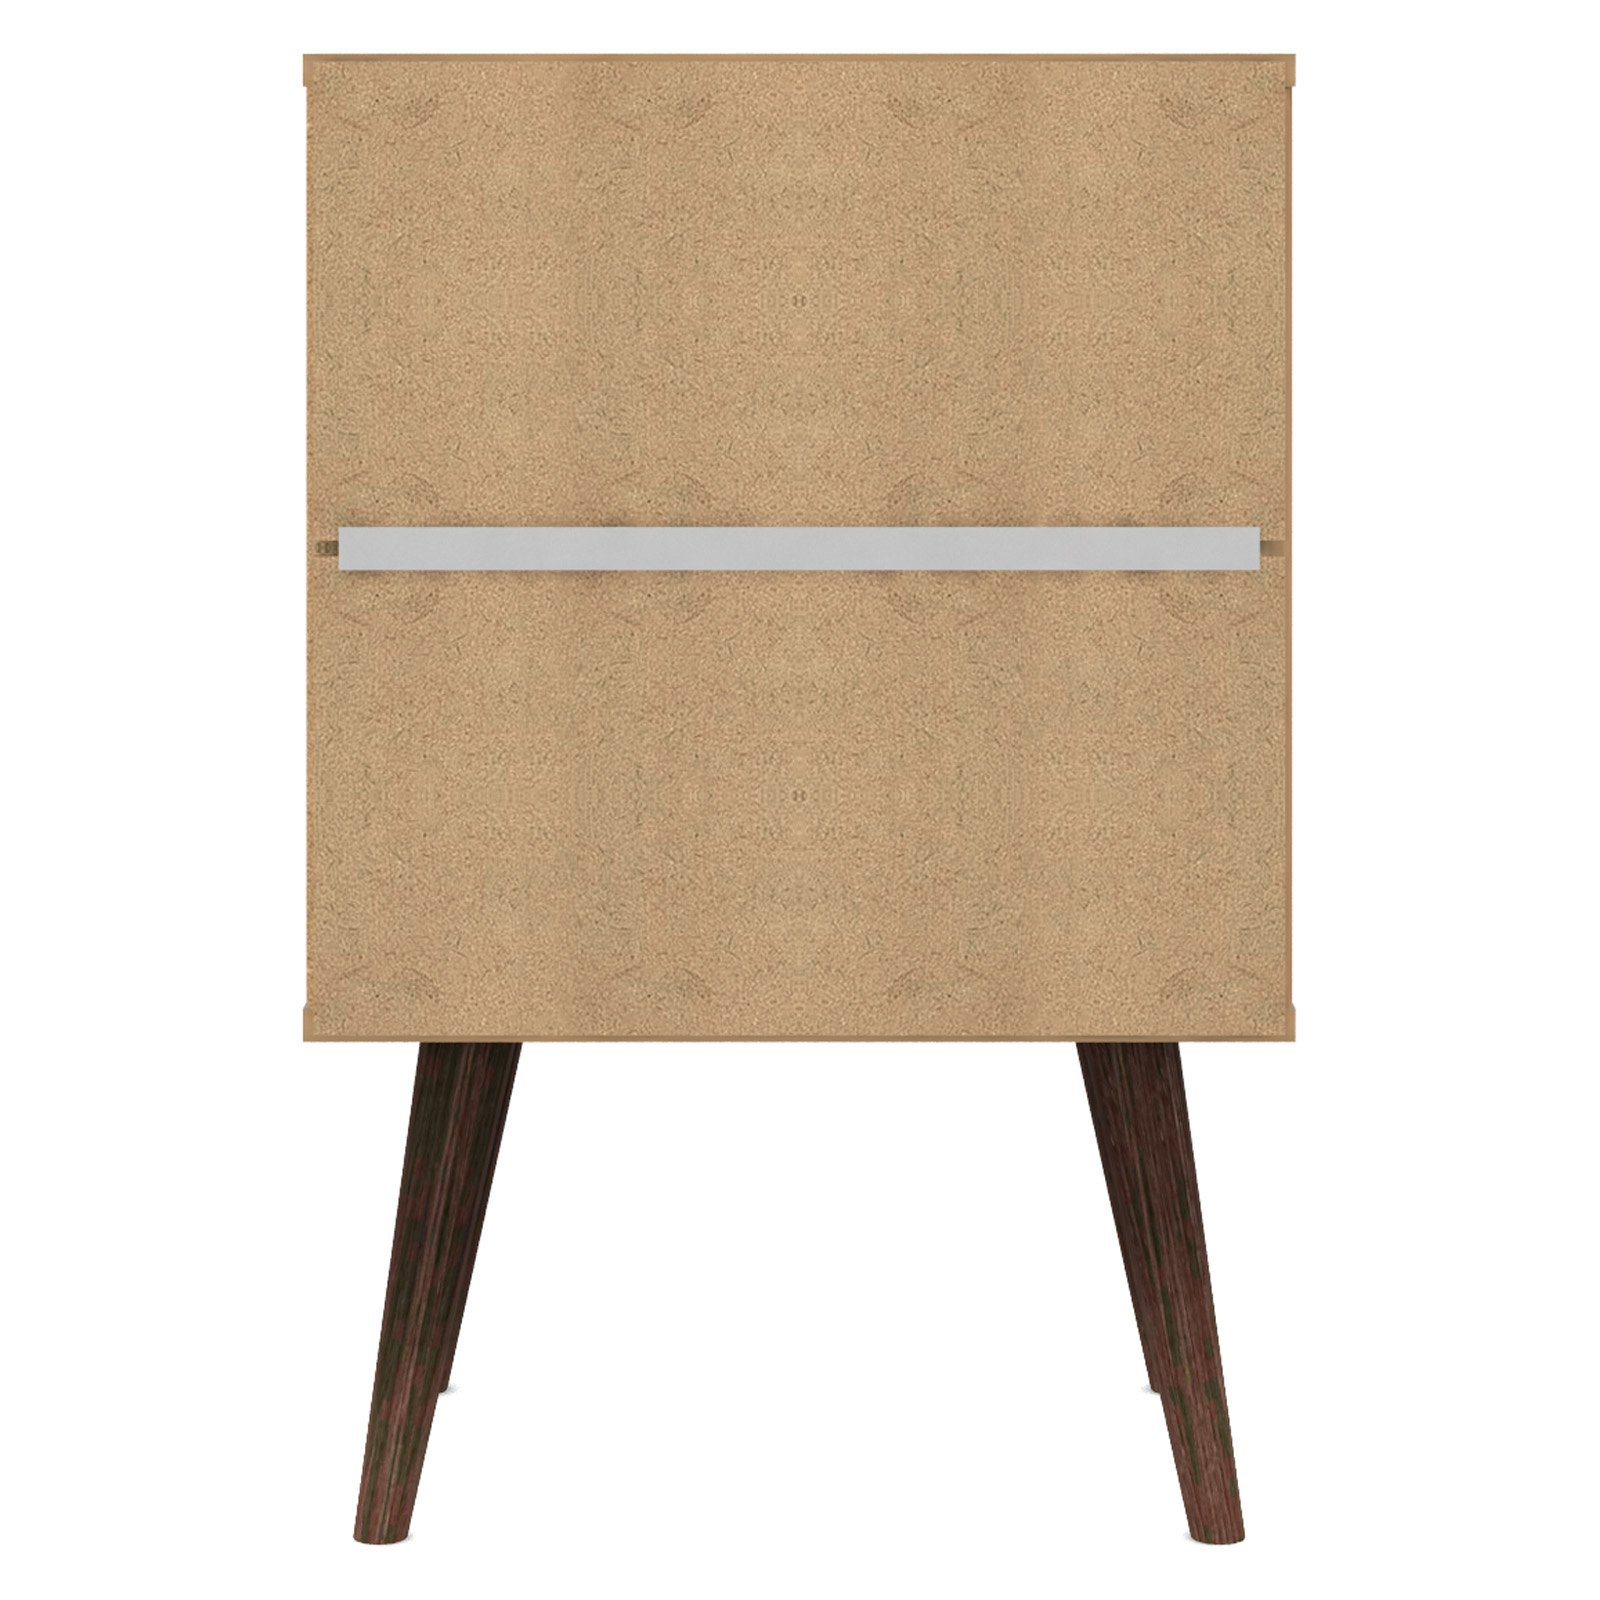 Manhattan Comfort Liberty Mid Century Modern Nightstand 1 0 With Cubby E And Drawer In White Rustic Brown Solid Wood Legs